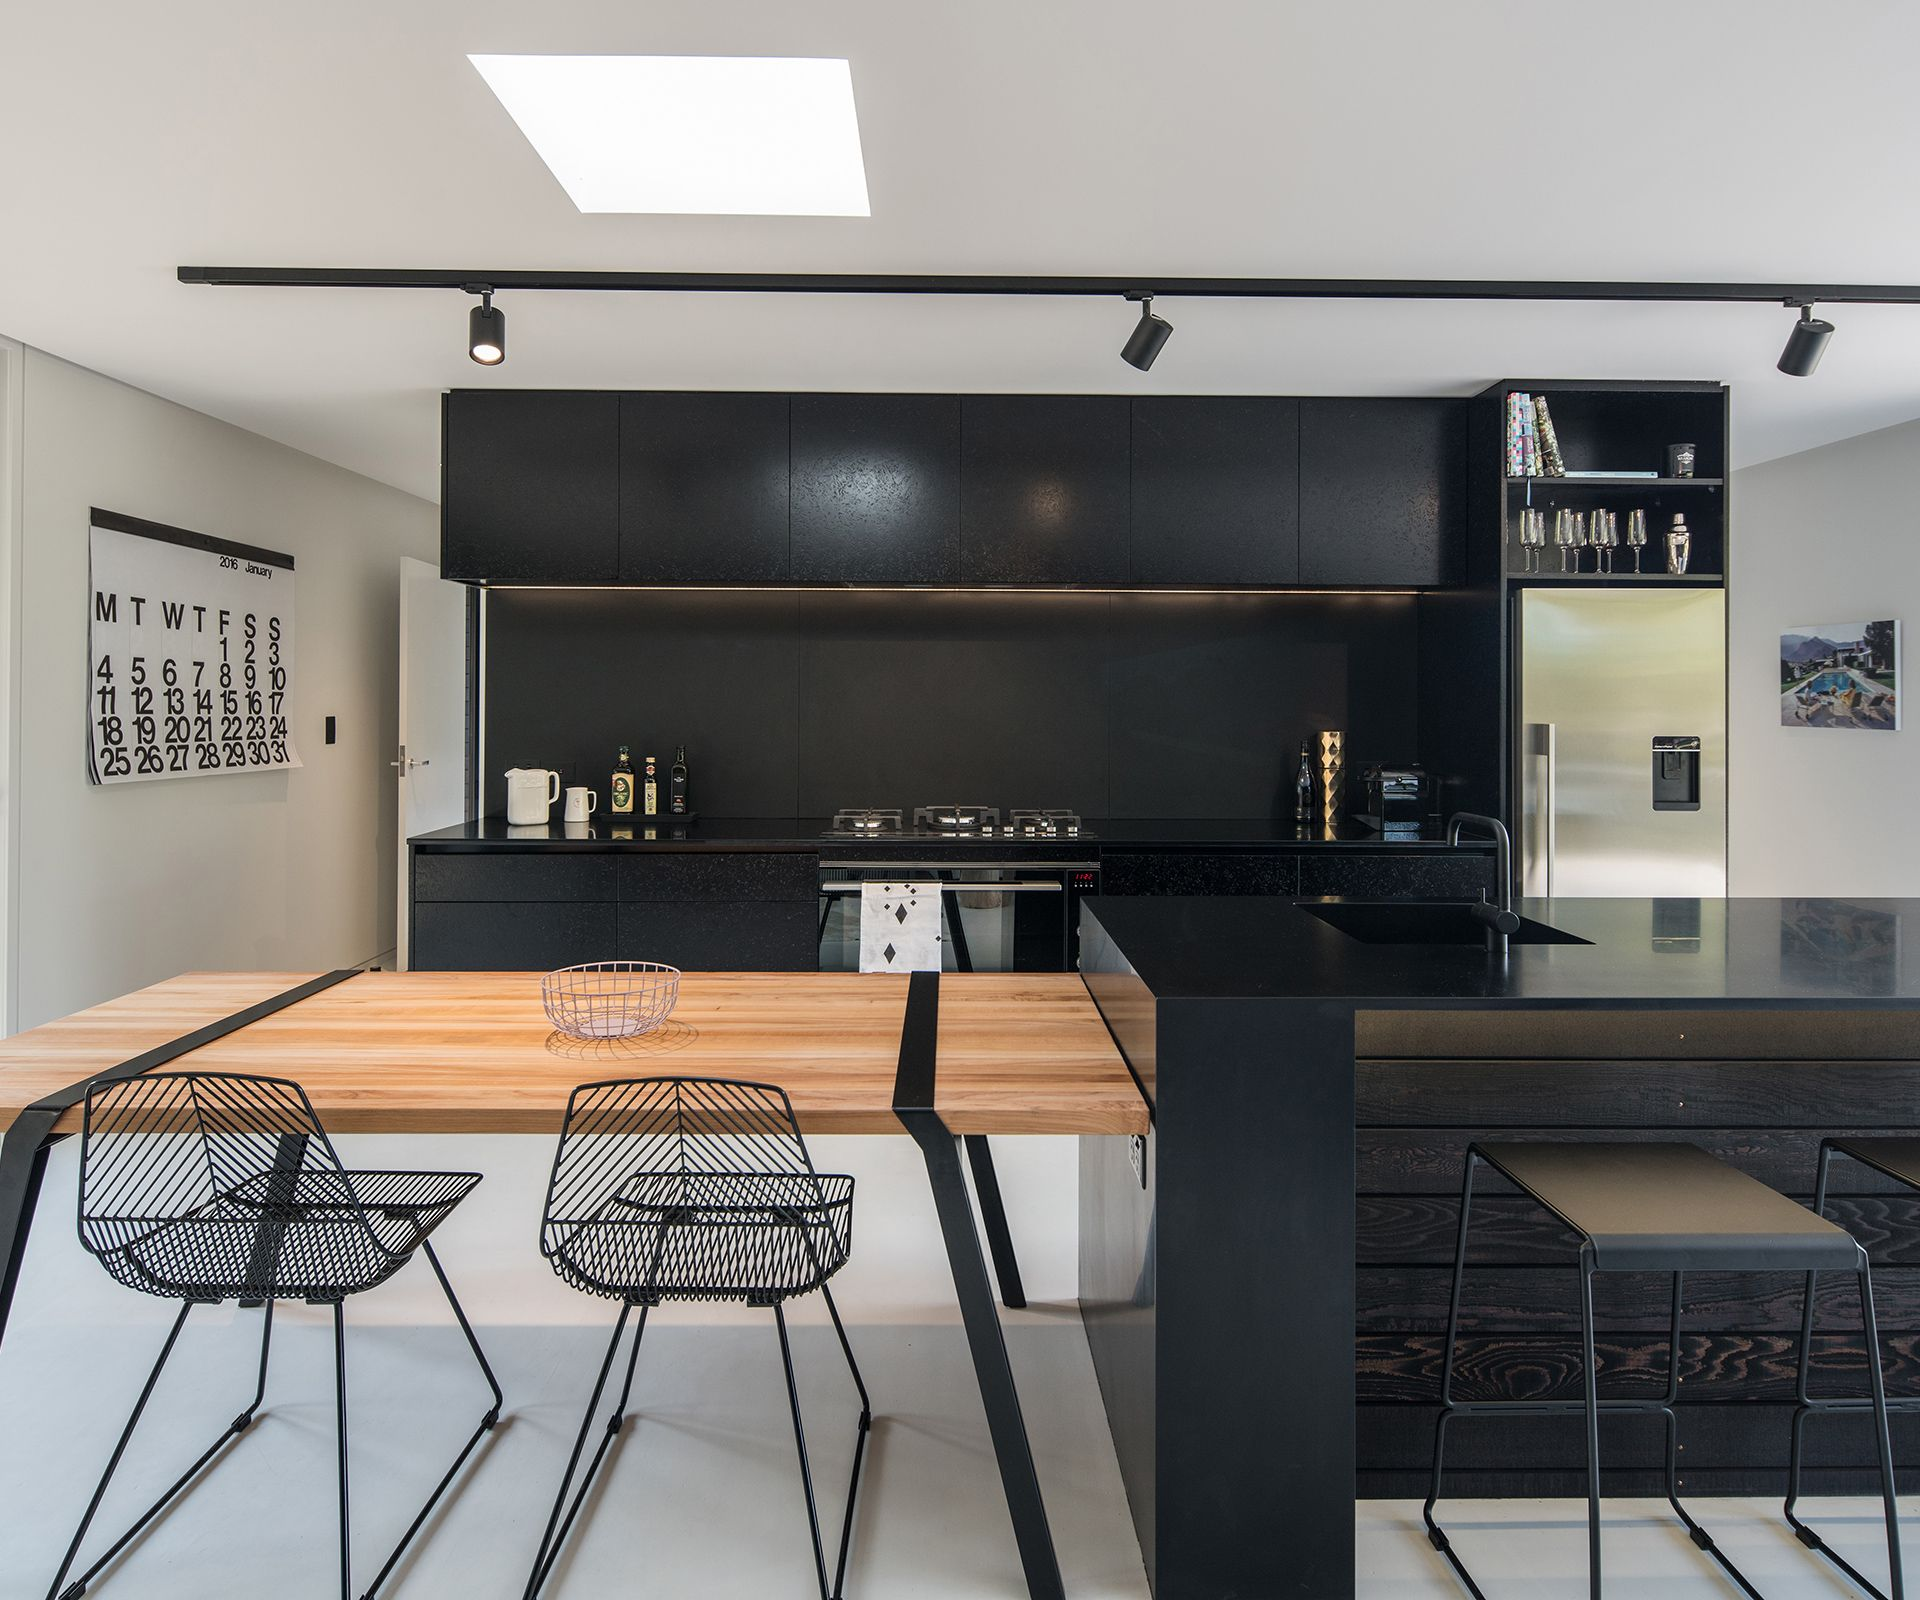 Hidden Kitchen Table An Architect 39s Own Sleek But Simple Holiday Getaway